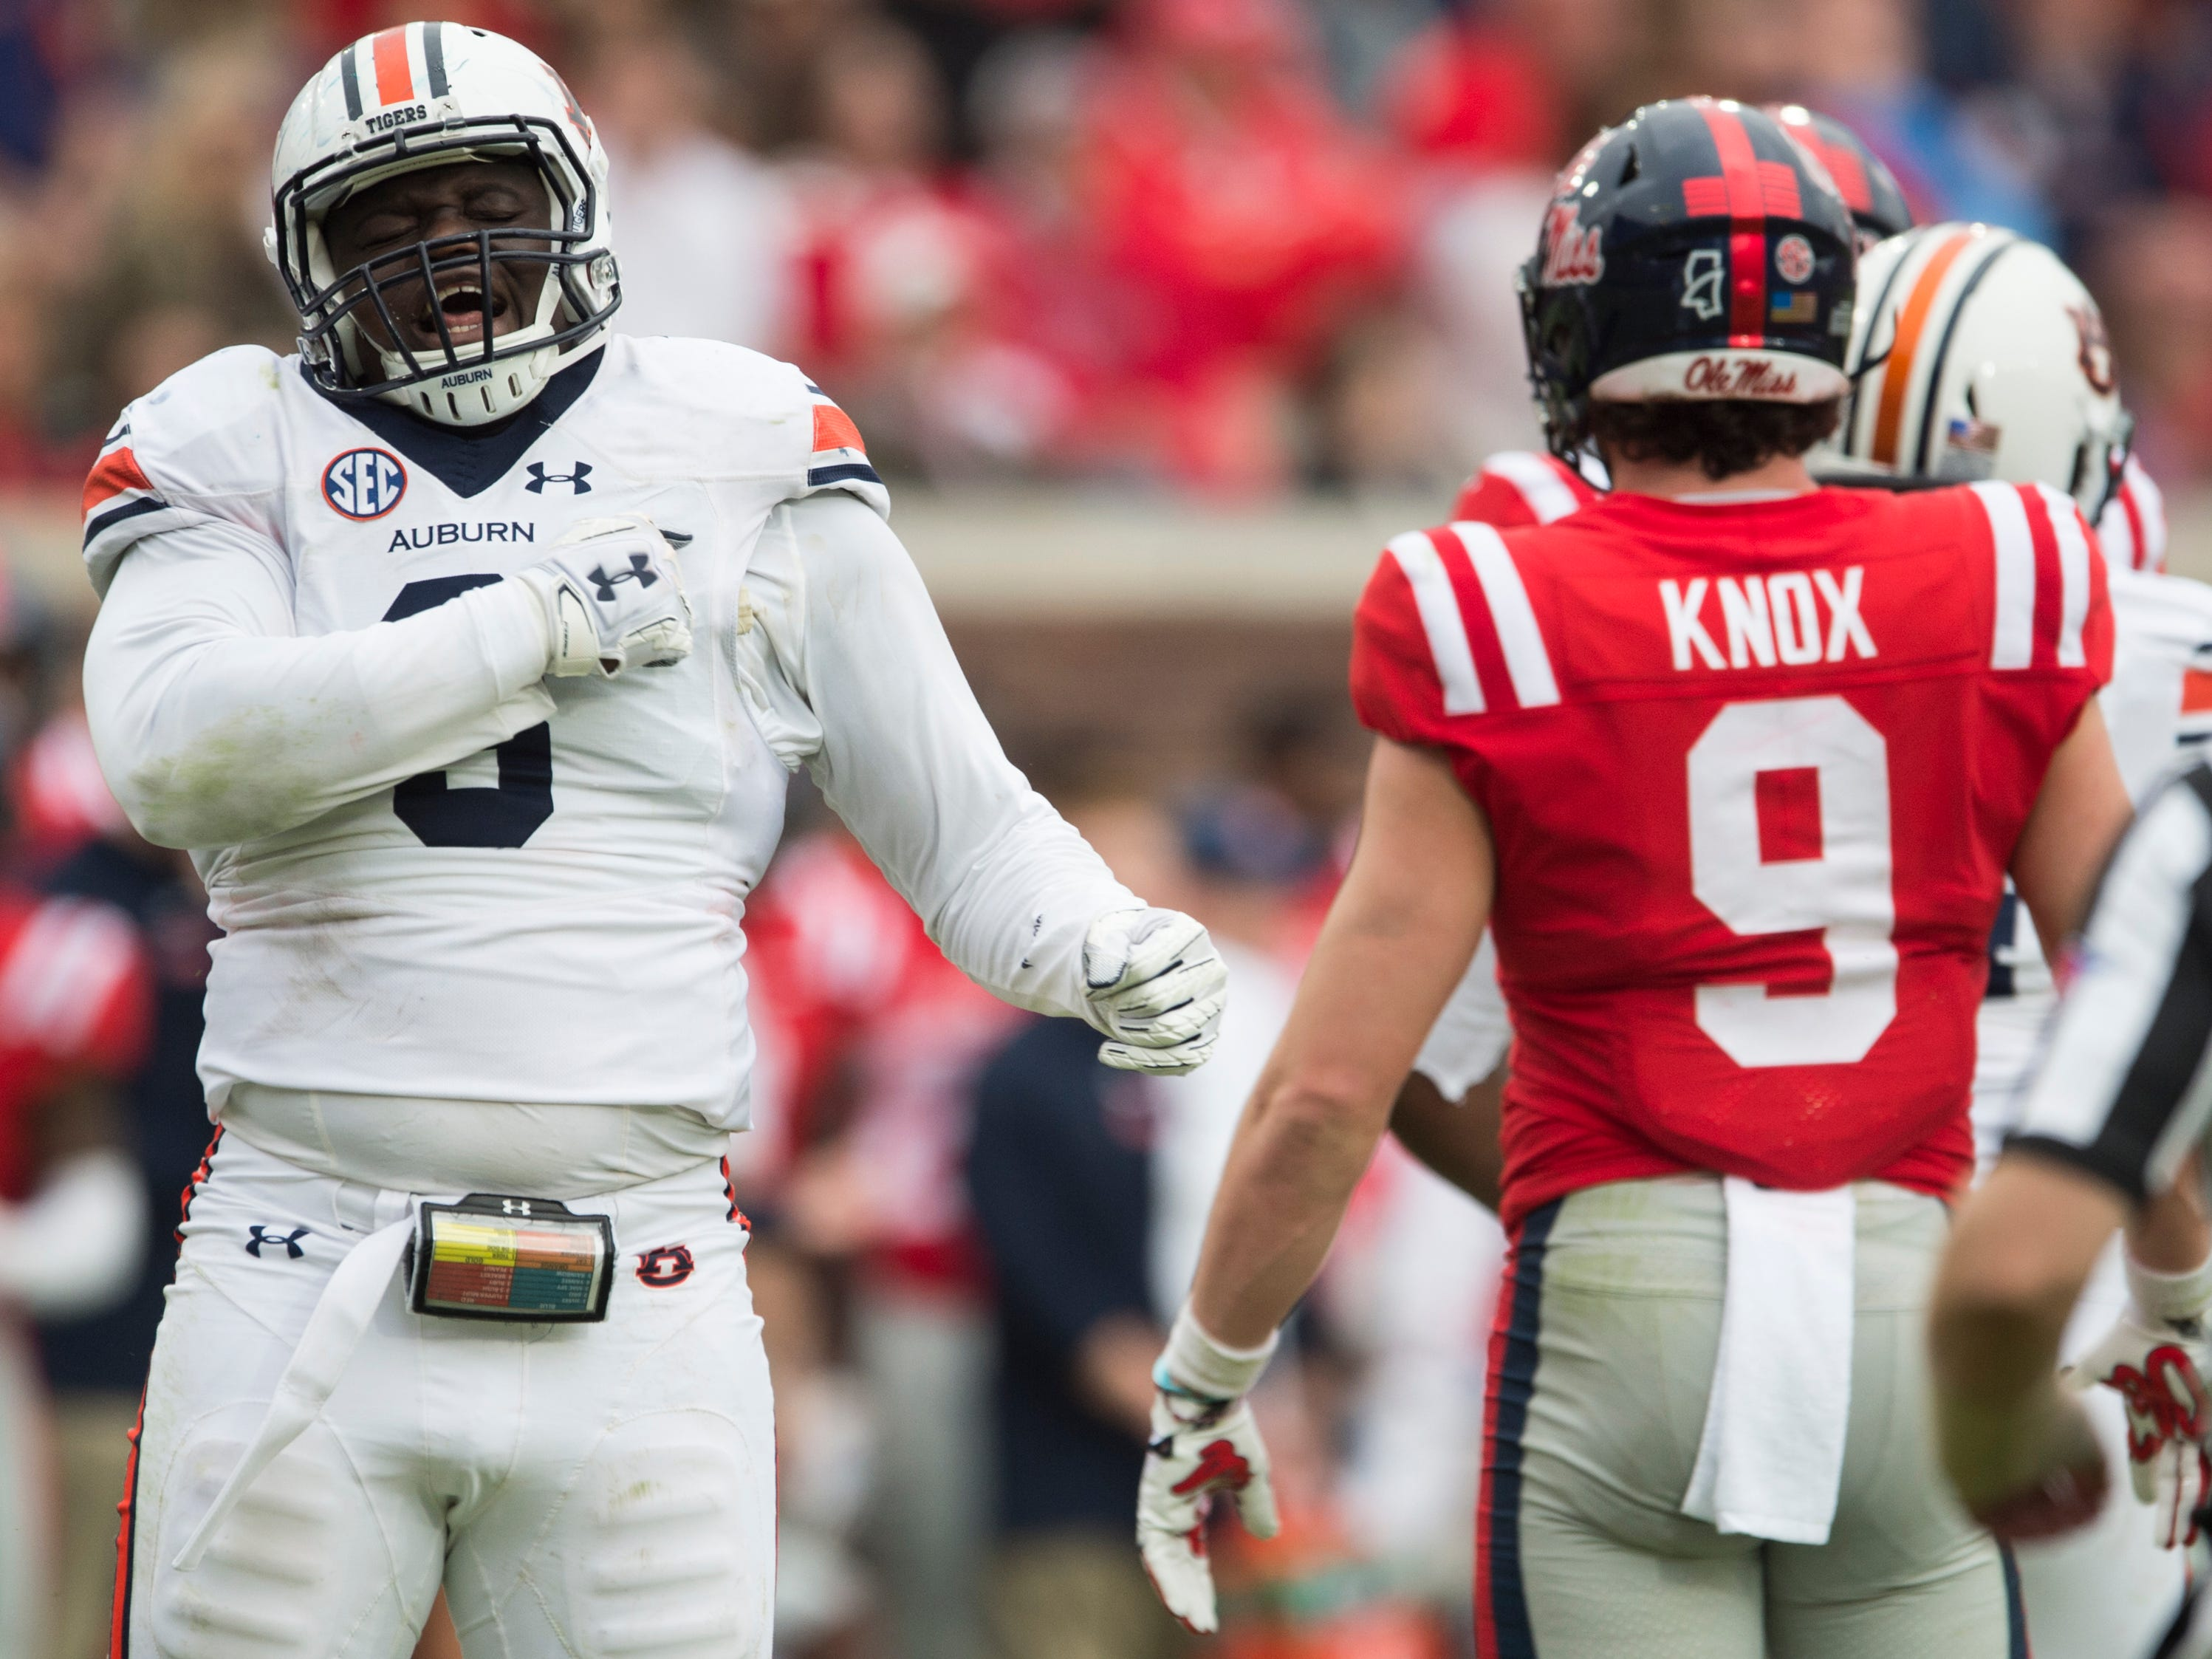 Auburn's Marlon Davidson (3) celebrates after getting a sack at Vaught-Hemingway Stadium in Oxford, Miss., on Saturday, Oct. 20, 2018. Auburn defeated Ole Miss 31-16.